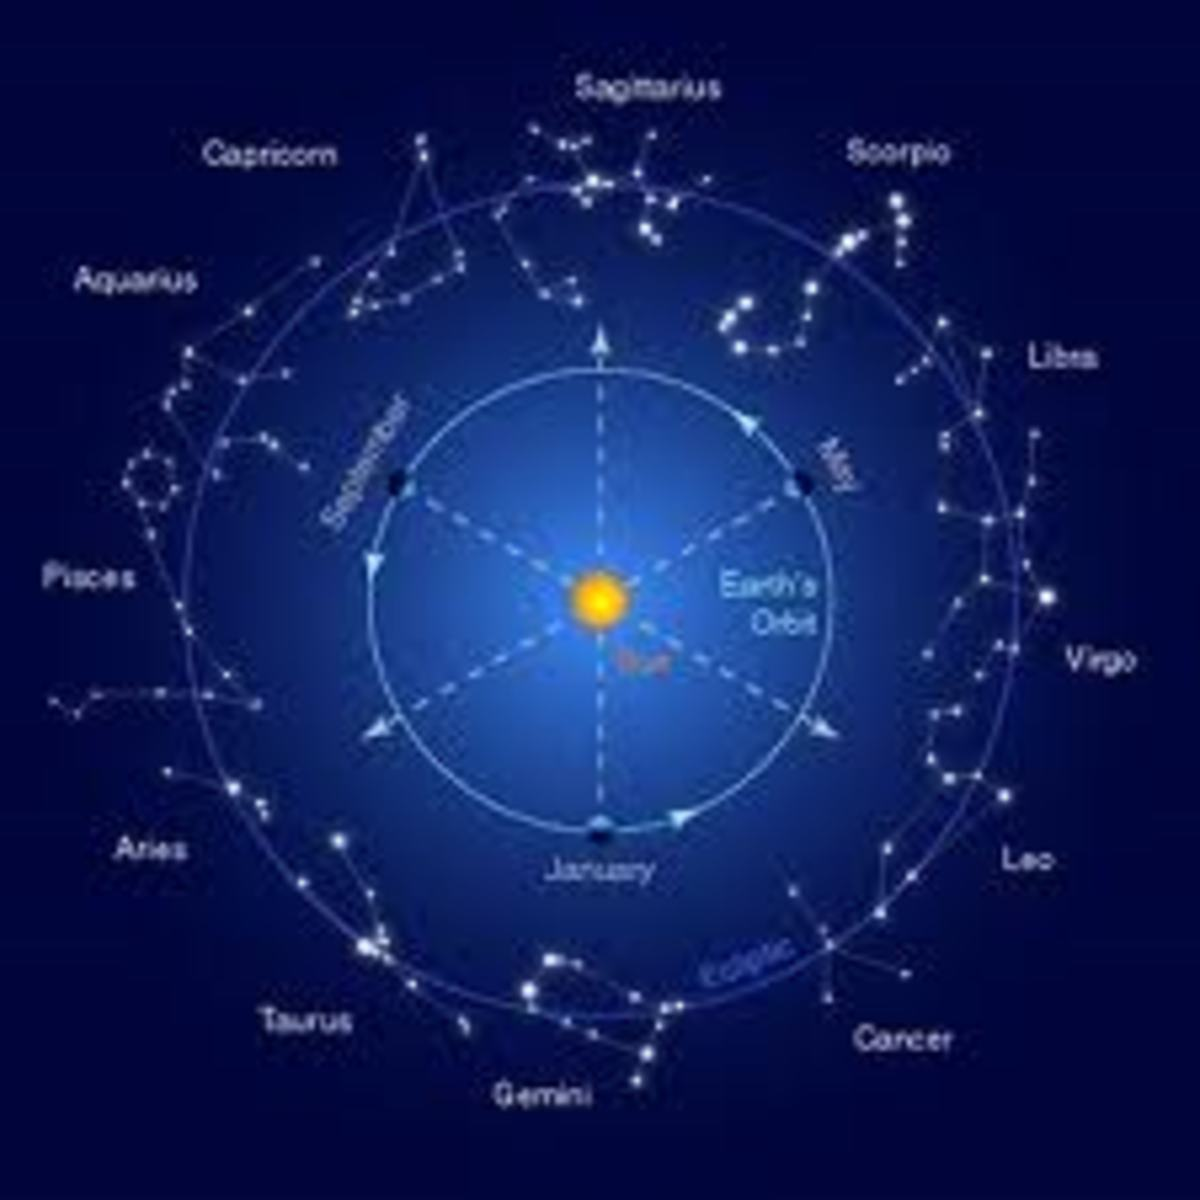 The sign of the zodiac is where our solar system and our planet earth is, we live in this corner of the universe in search of ourselves religiously and in search of universal religious reconciliation?